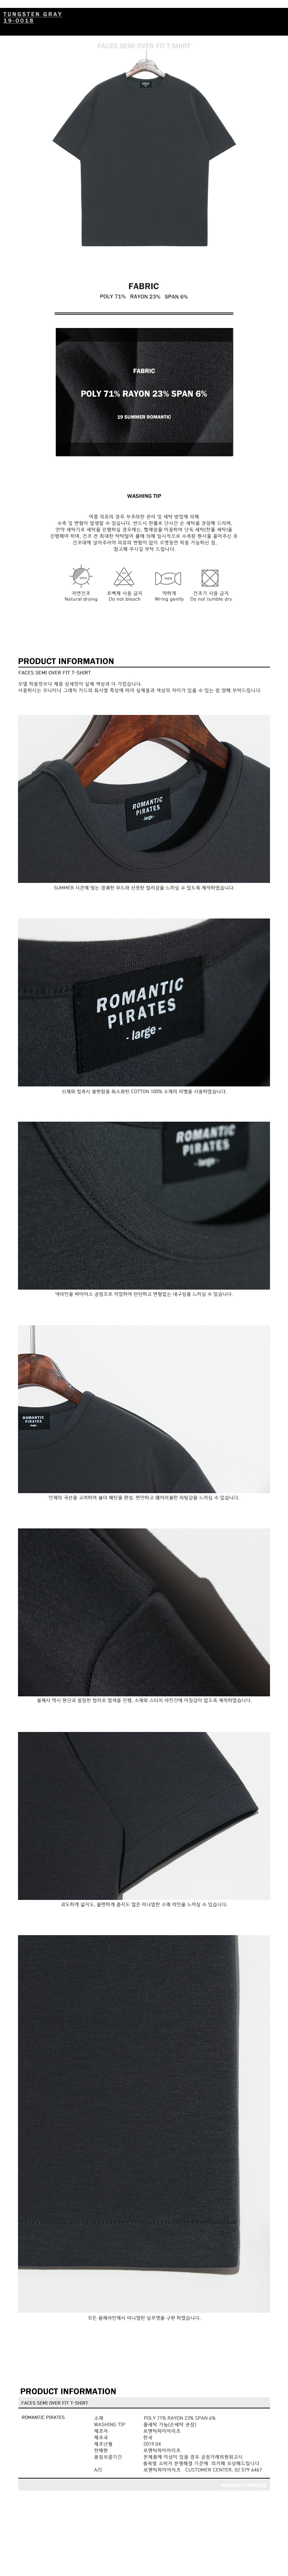 로맨틱 파이어리츠(ROMANTICPIRATES) FACES SEMI OVER FIT T-SHIRT(TUNGSTEN GRAY)